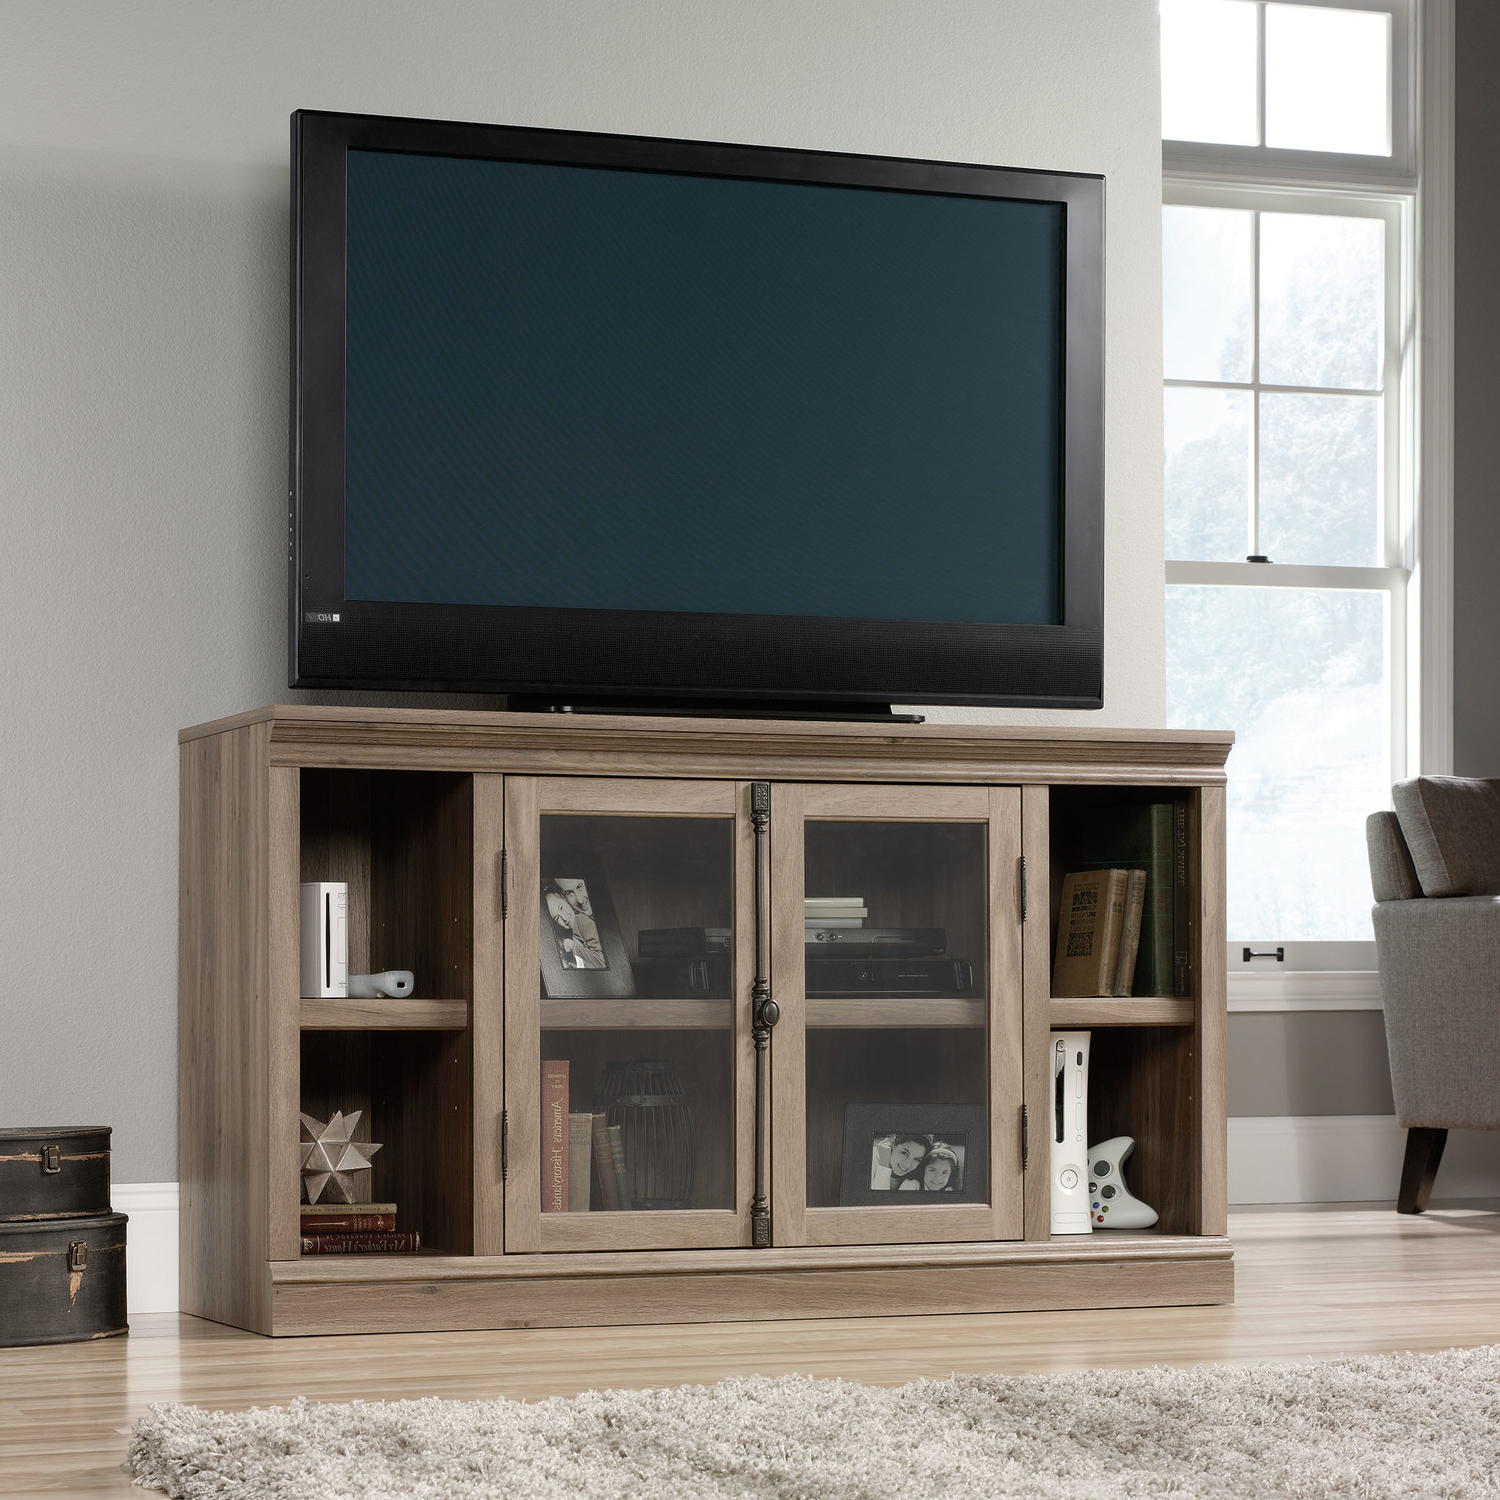 Well Liked Simple Design Rustic Tv Stand — Home Decorcoppercreekgroup With Rustic Tv Stands (View 14 of 20)